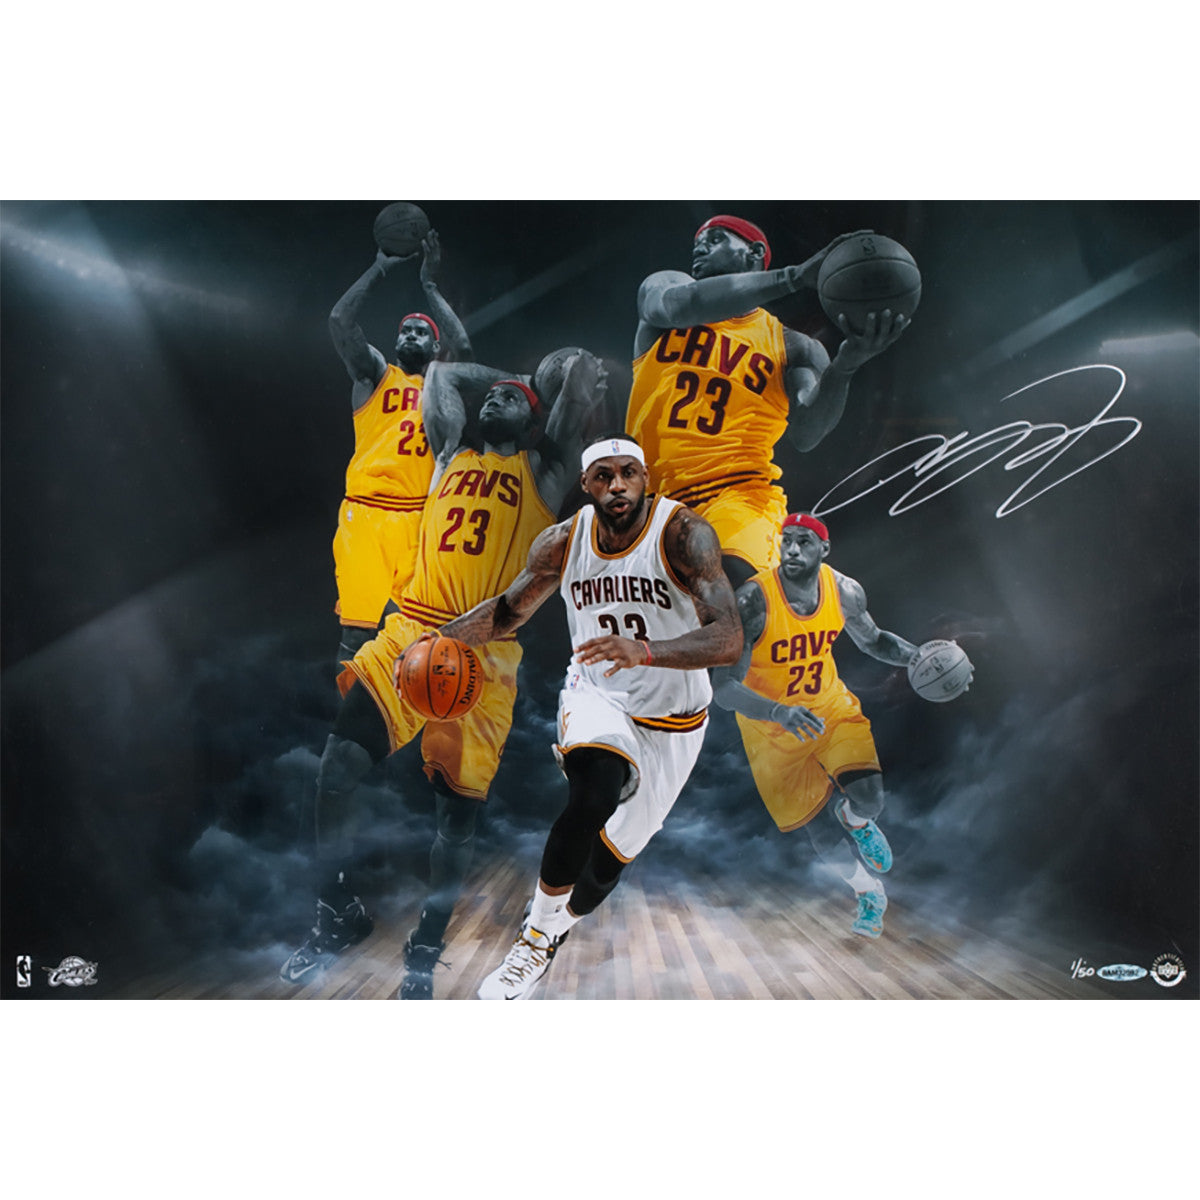 062009d1206 Lebron James Imaginative 16x24 Photo (LE 50)  Price   850.00. Framed Kyrie  Irving Cleveland Cavaliers Autographed Navy Swingman Jersey ...